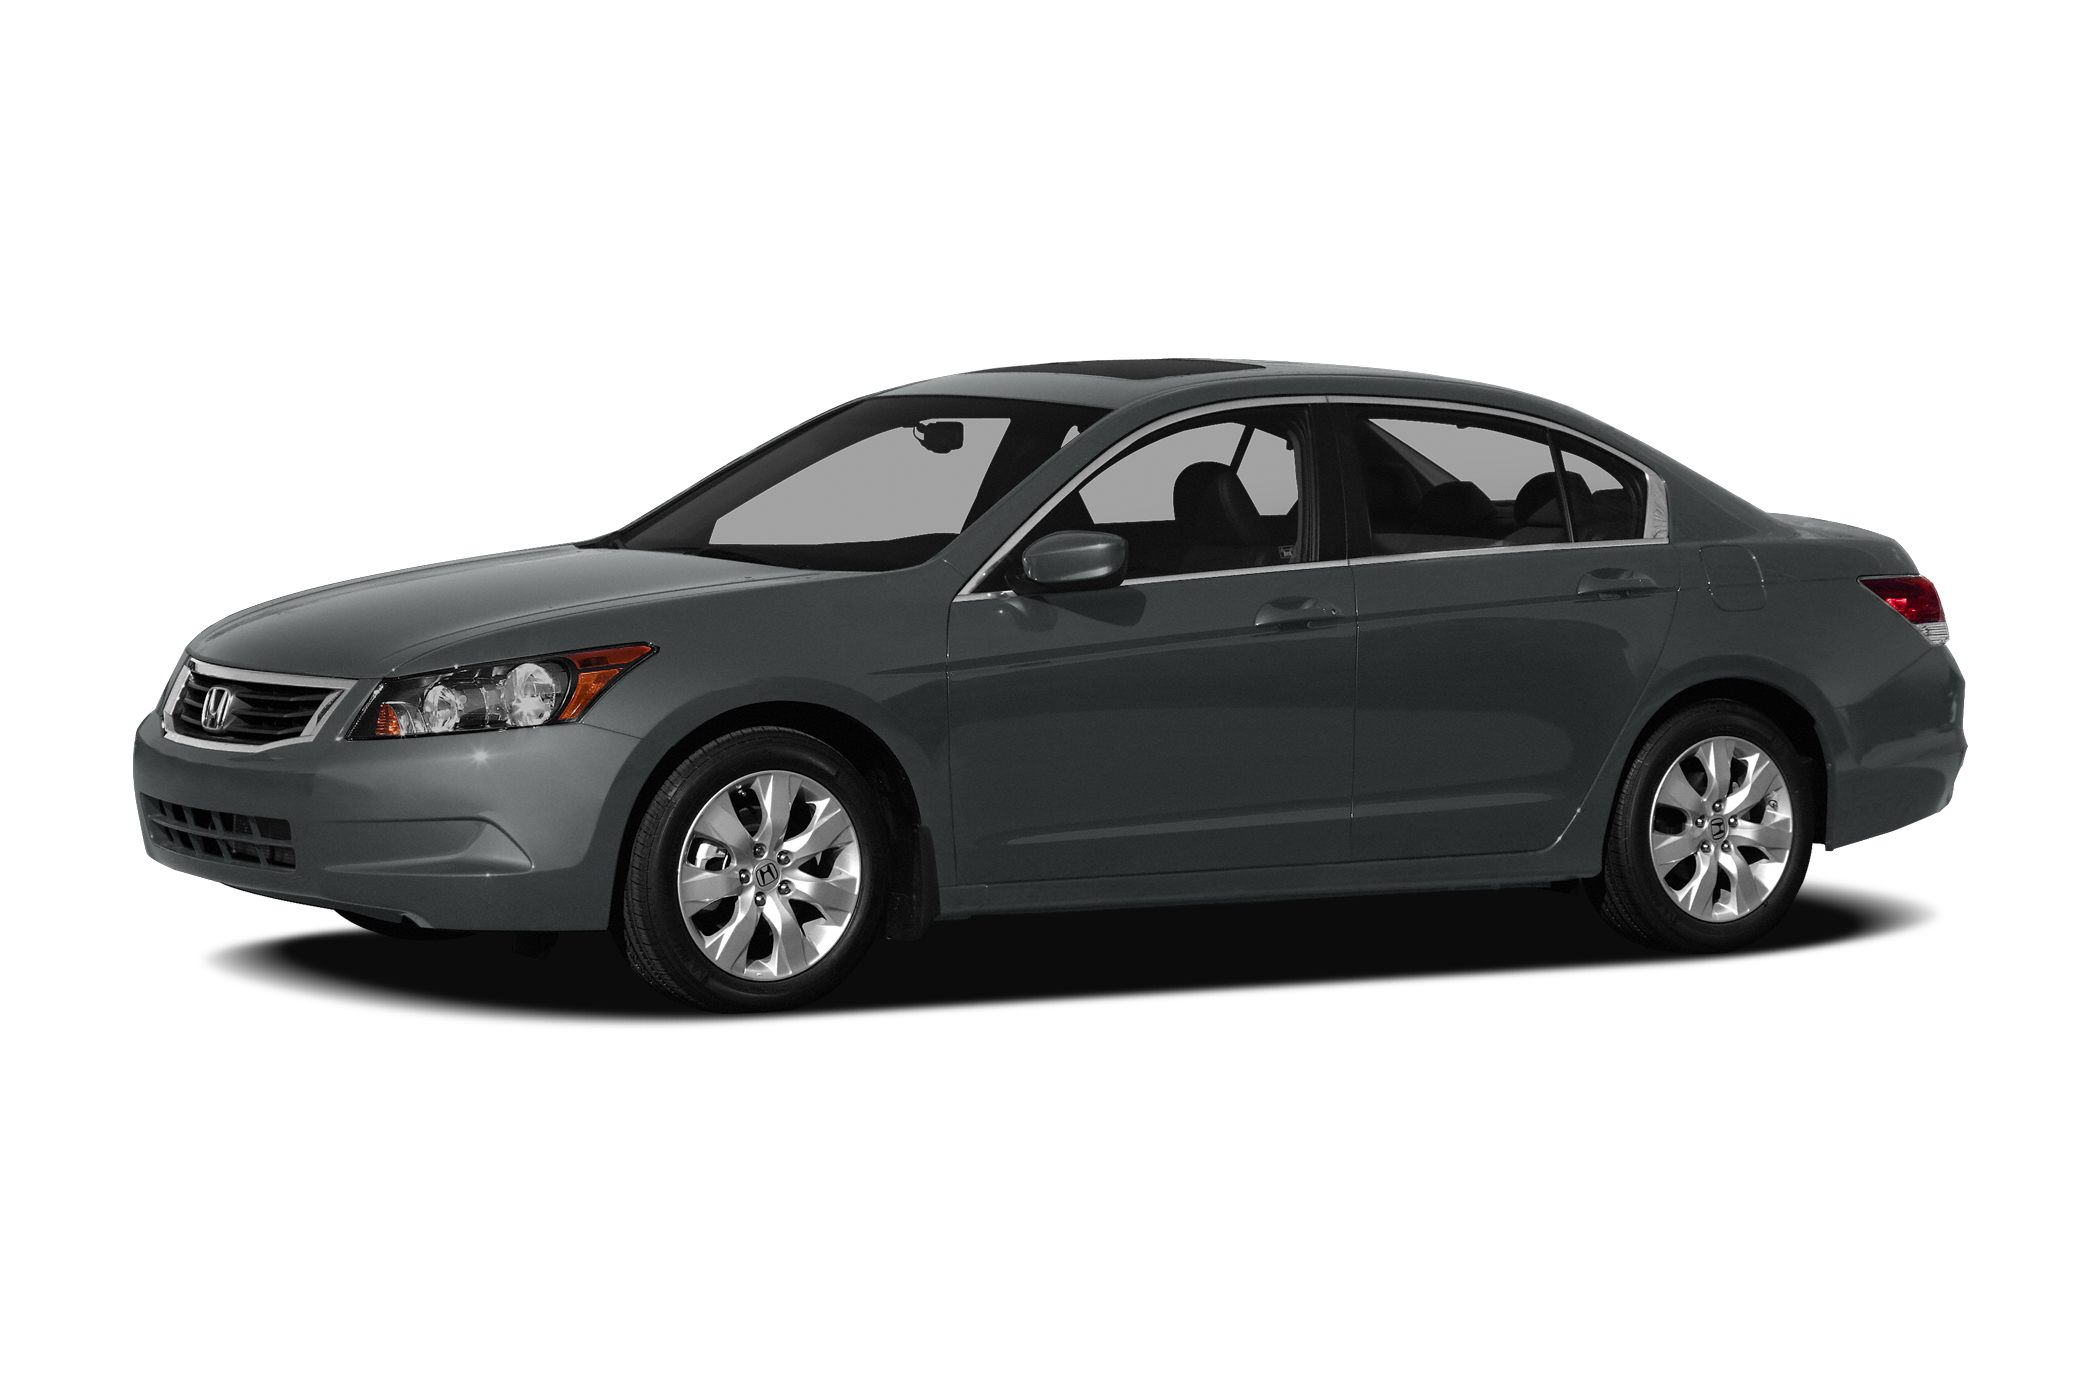 2009 Honda Accord 24 LX Family owned and operated All our cars are put through a very stringent